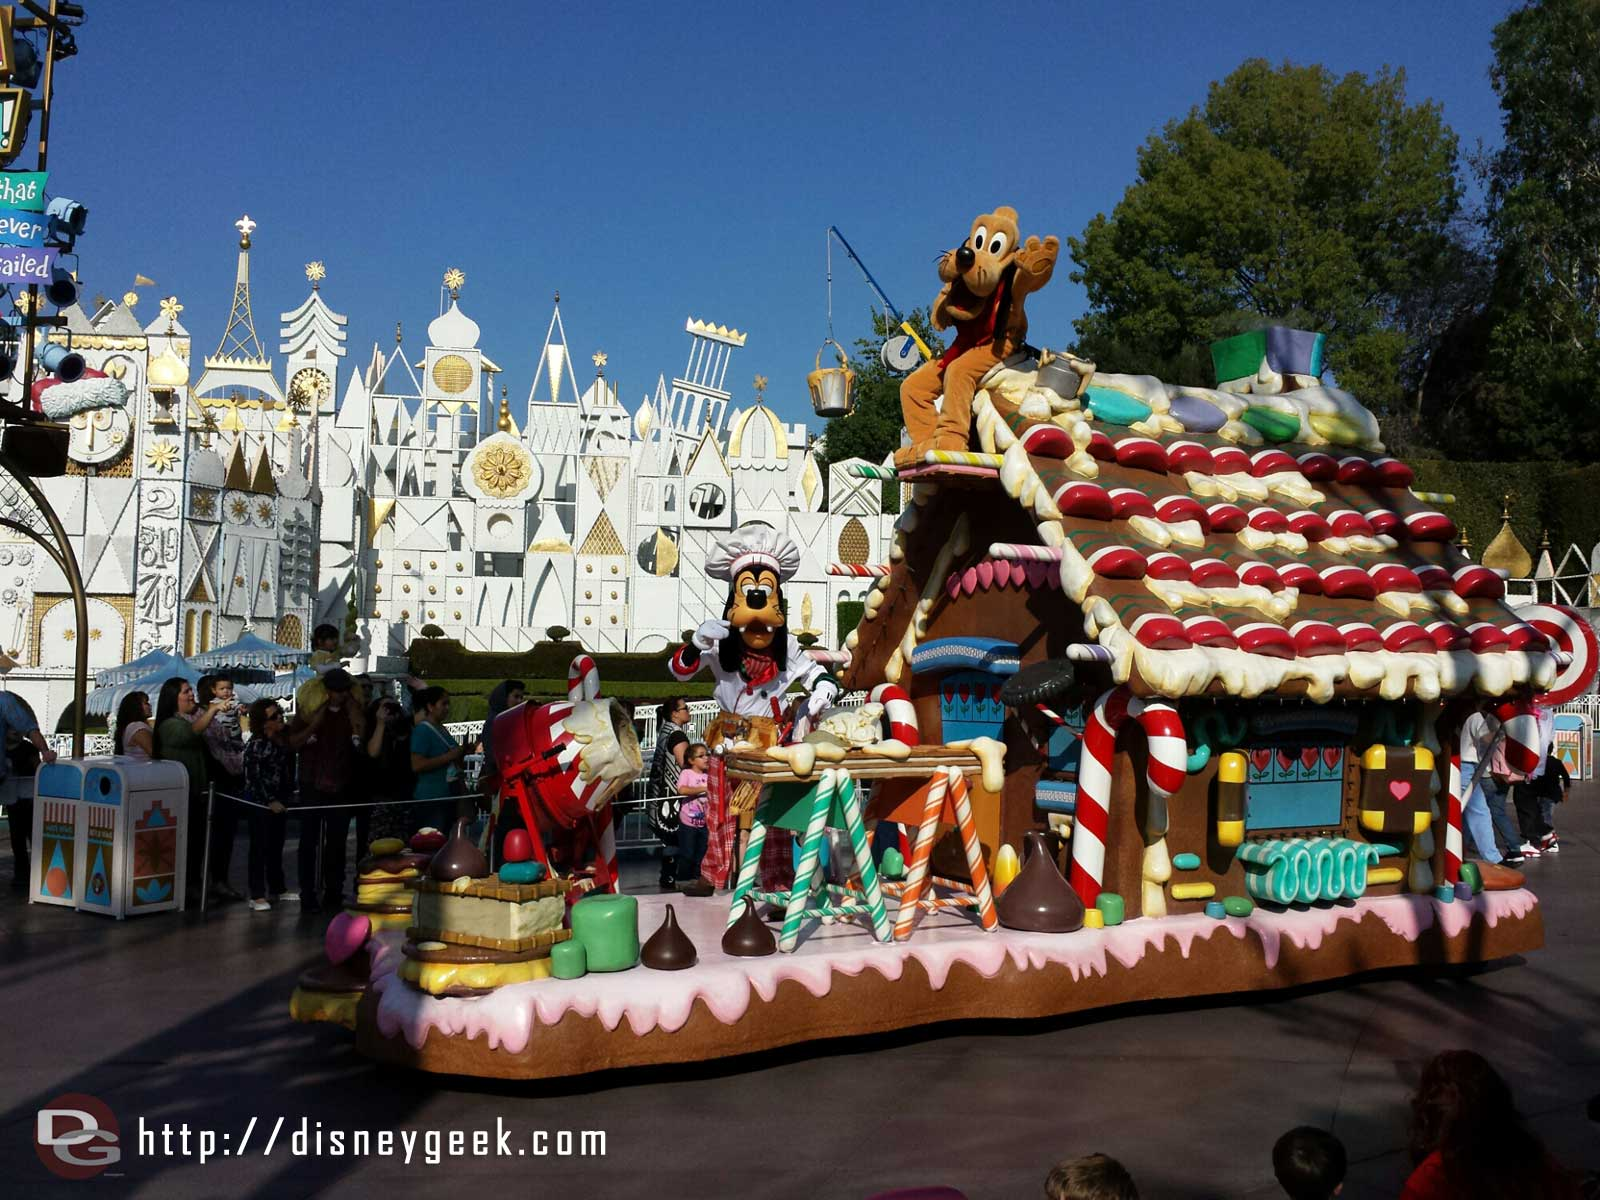 Goofy & Pluto in A Christmas Fantasy Parade #Disneyland